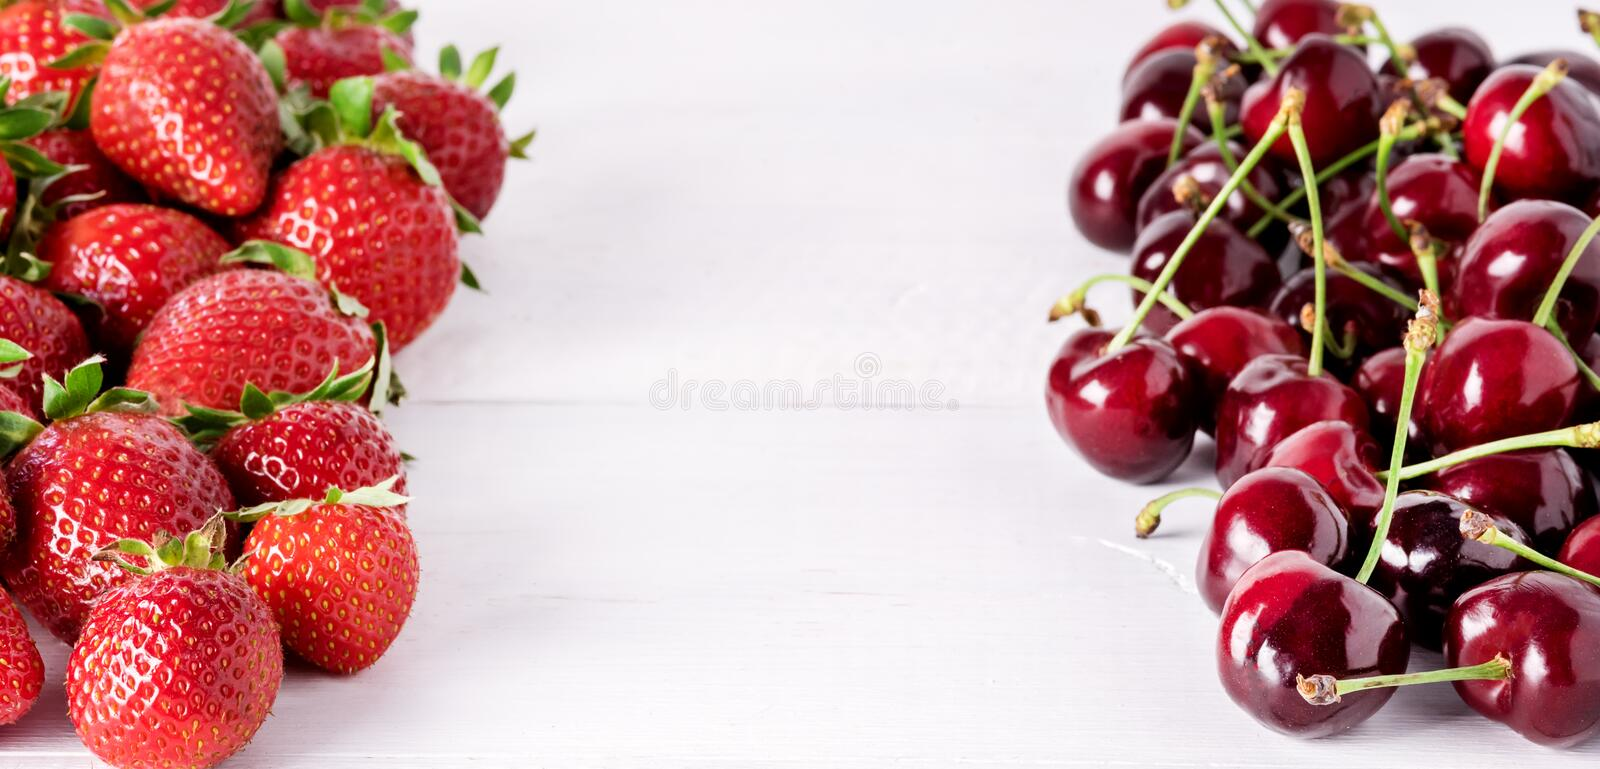 Fresh Beautiful Ripe Berries on a White Wooden Background Sweet Strawberries and Cherry Frame Long stock photos